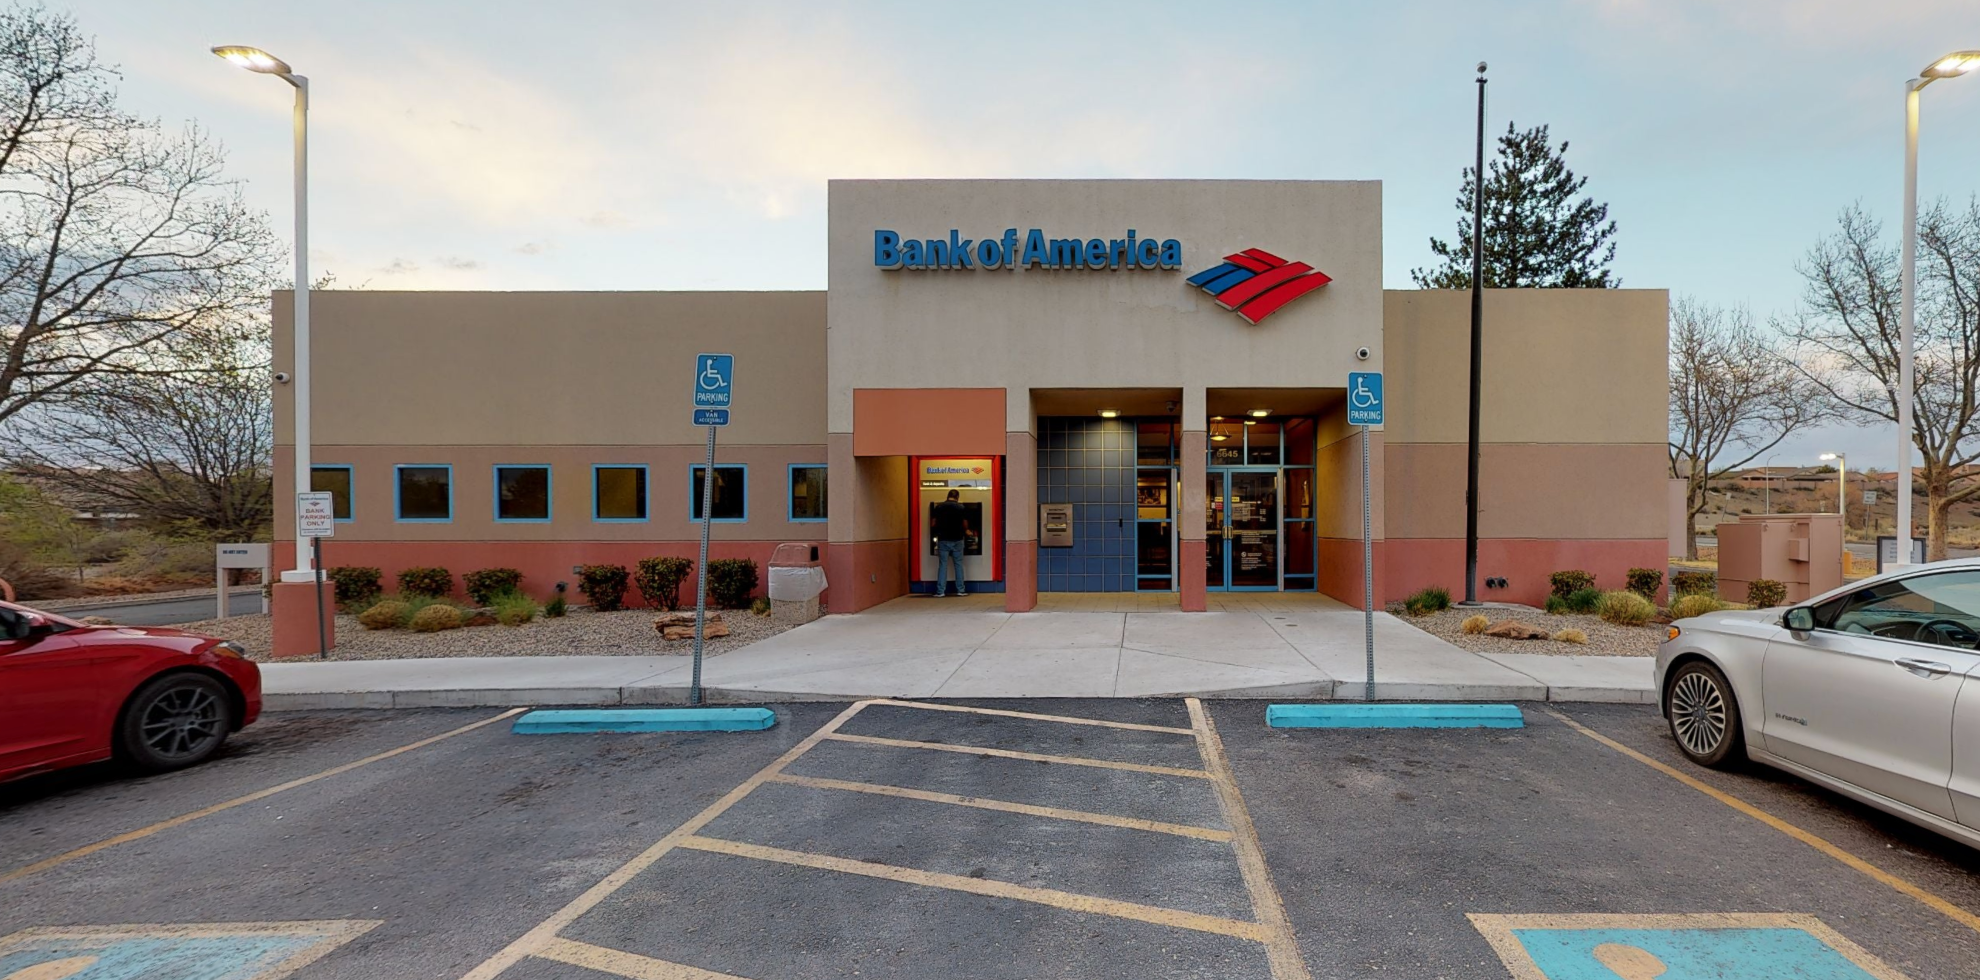 Bank of America financial center with drive-thru ATM and teller   6645 Caminito Coors NW, Albuquerque, NM 87120